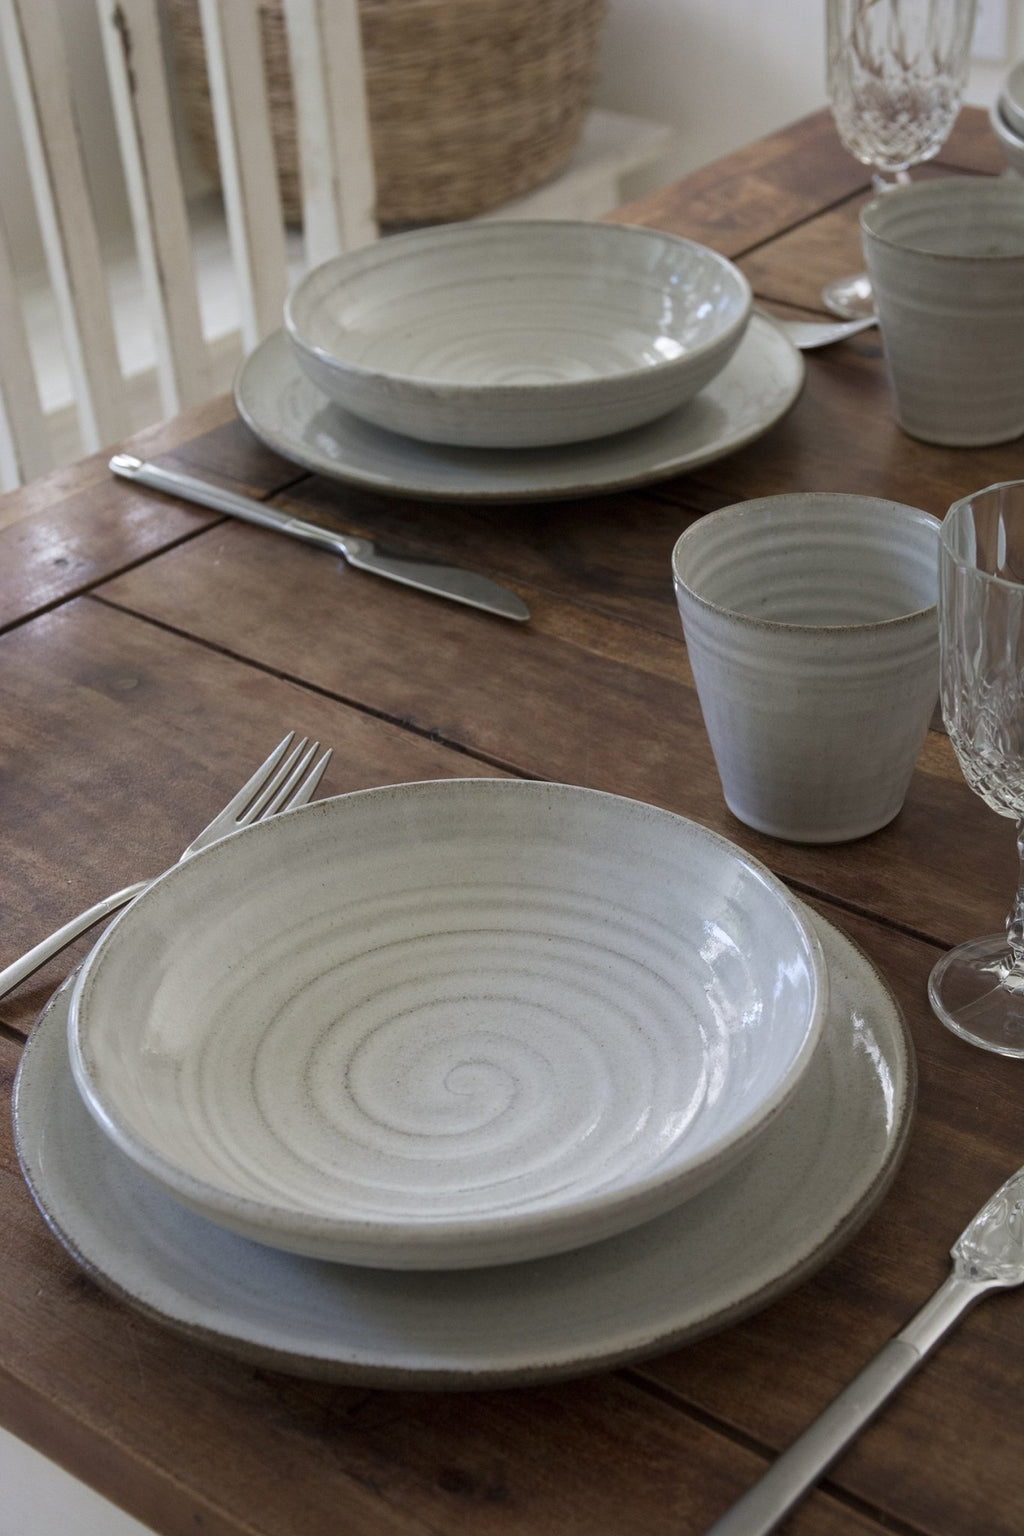 Pottery Dinnerware, 1 Place Setting, Main Course Plate and a Pasta Bowl - Mad About Pottery- plates